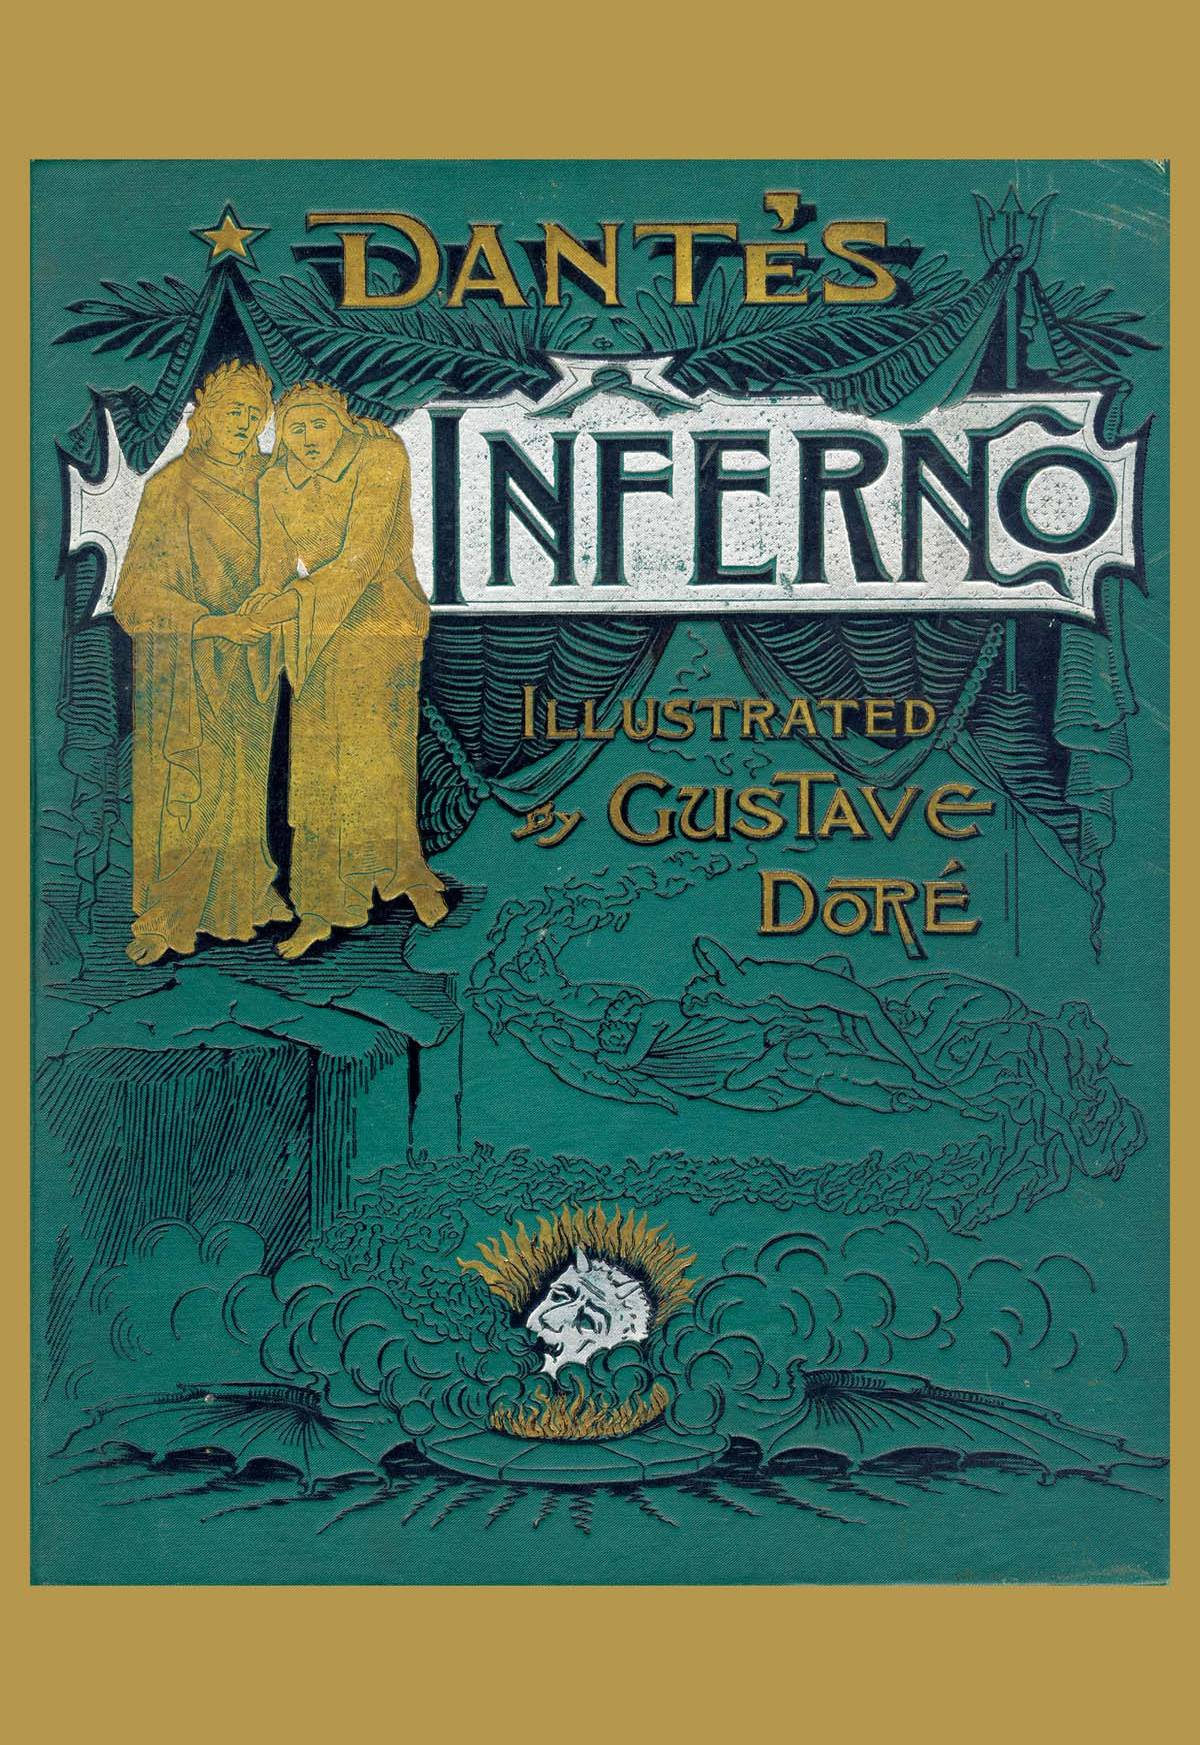 Old Book Cover Posters : Dante s inferno posters and canvas art prints vintage